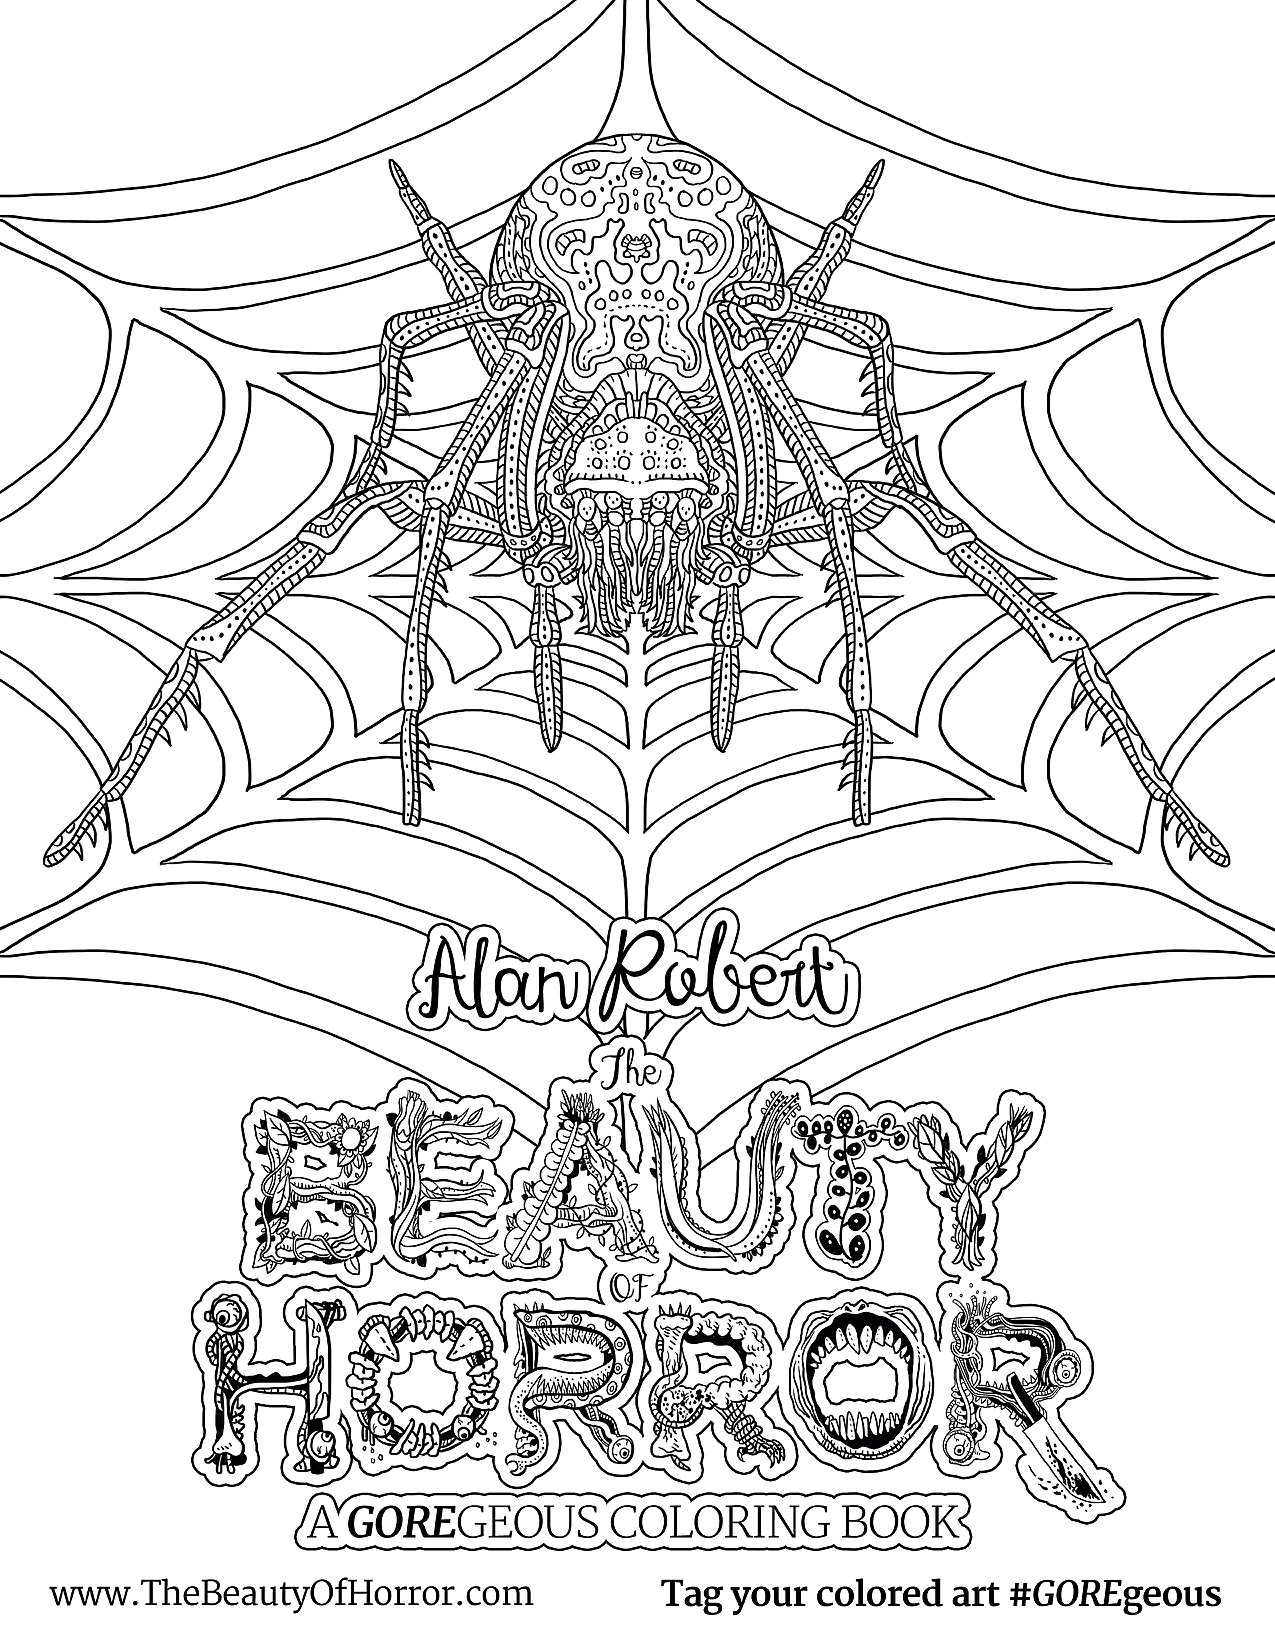 Alan Robert & 'The Beauty of Horror II' Coloring Book ...